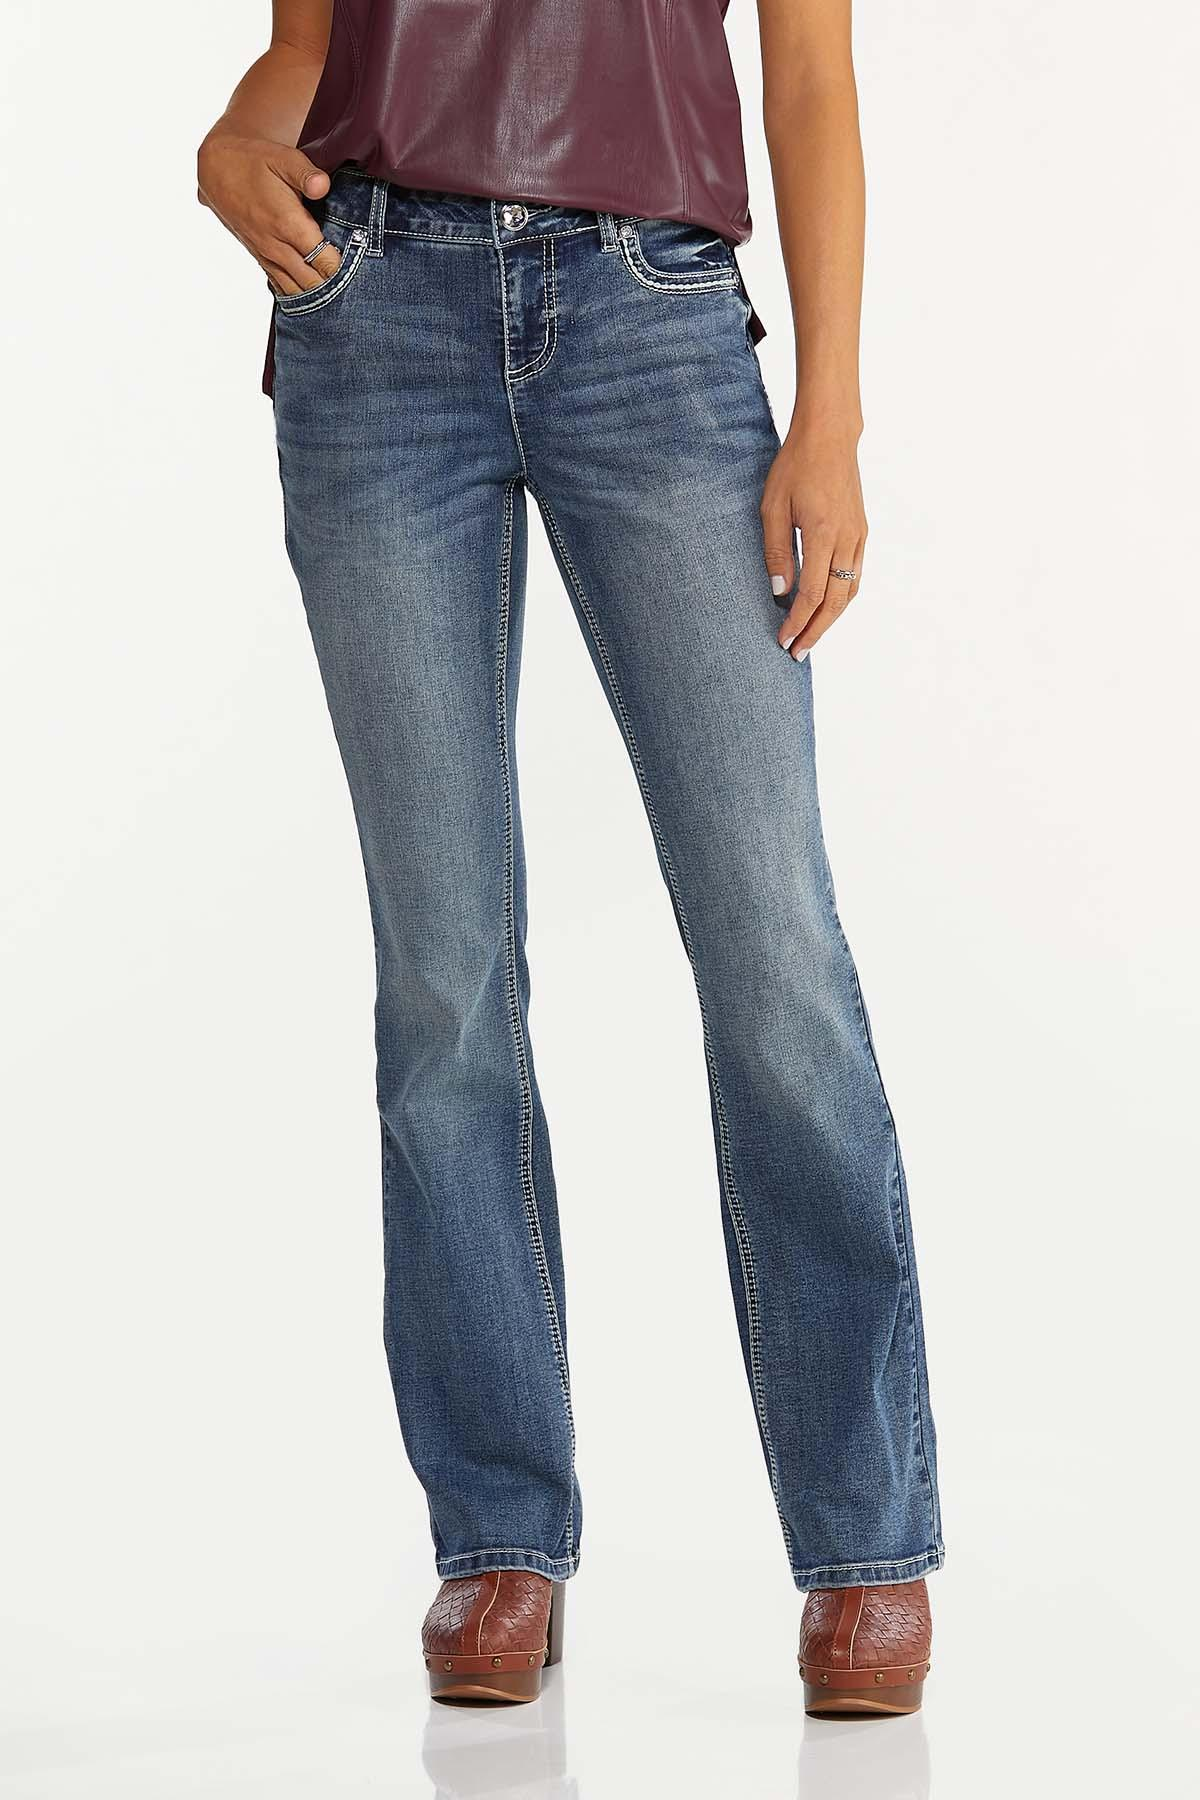 Star Studded Bootcut Jeans (Item #44674409)